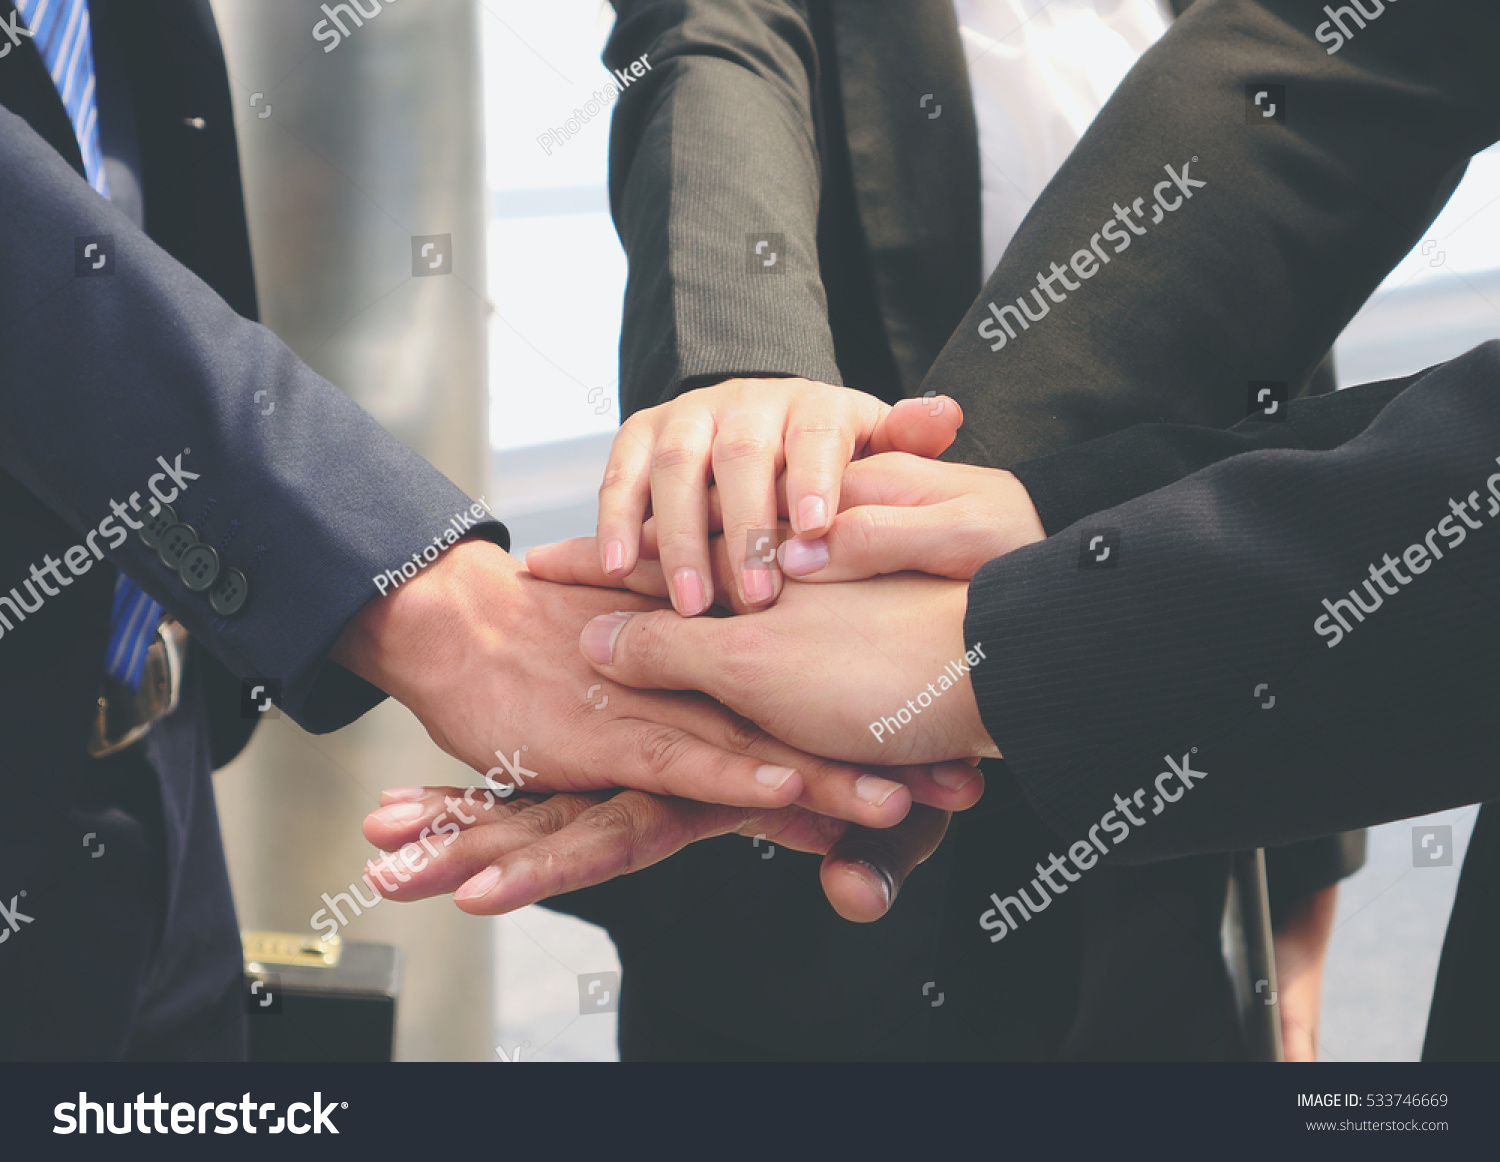 Isolated Baby Hand Touching Stock Image - Image of palm ... |Touching Hands Together